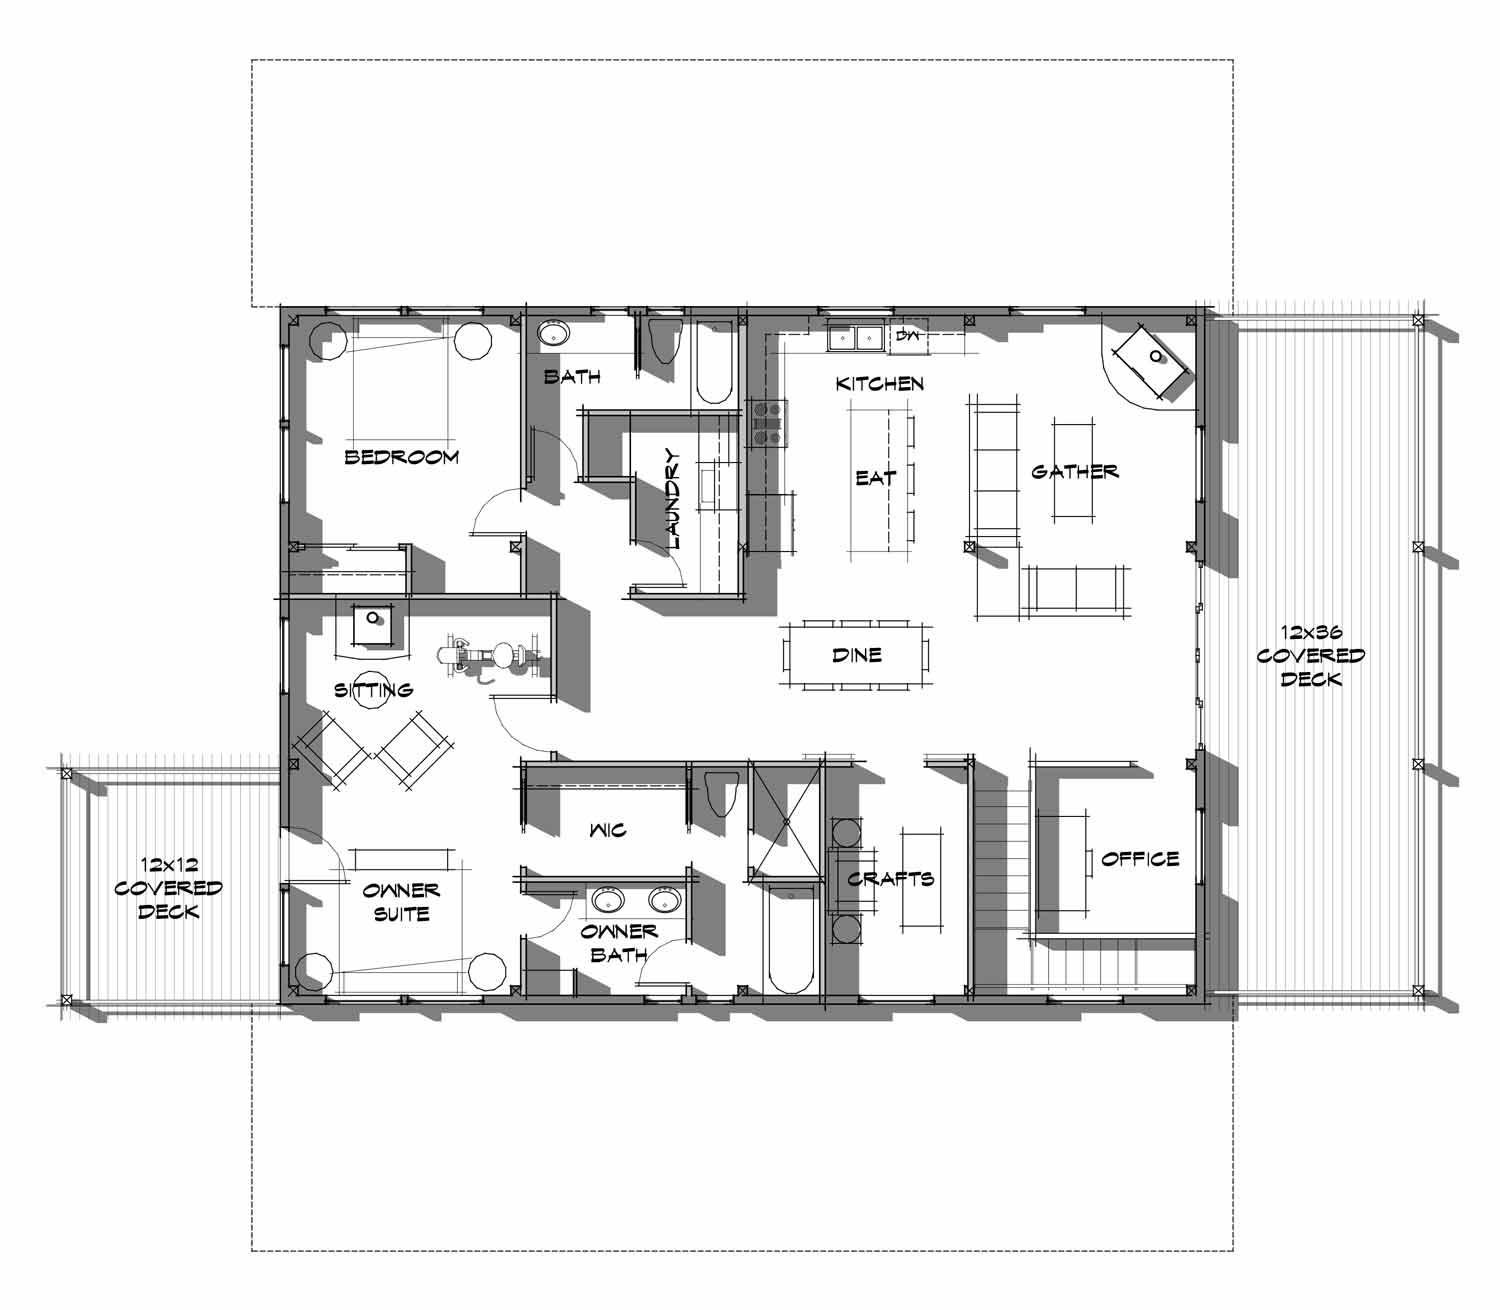 Timber frame shop with living quarters upper level floor plan - The Wallowa